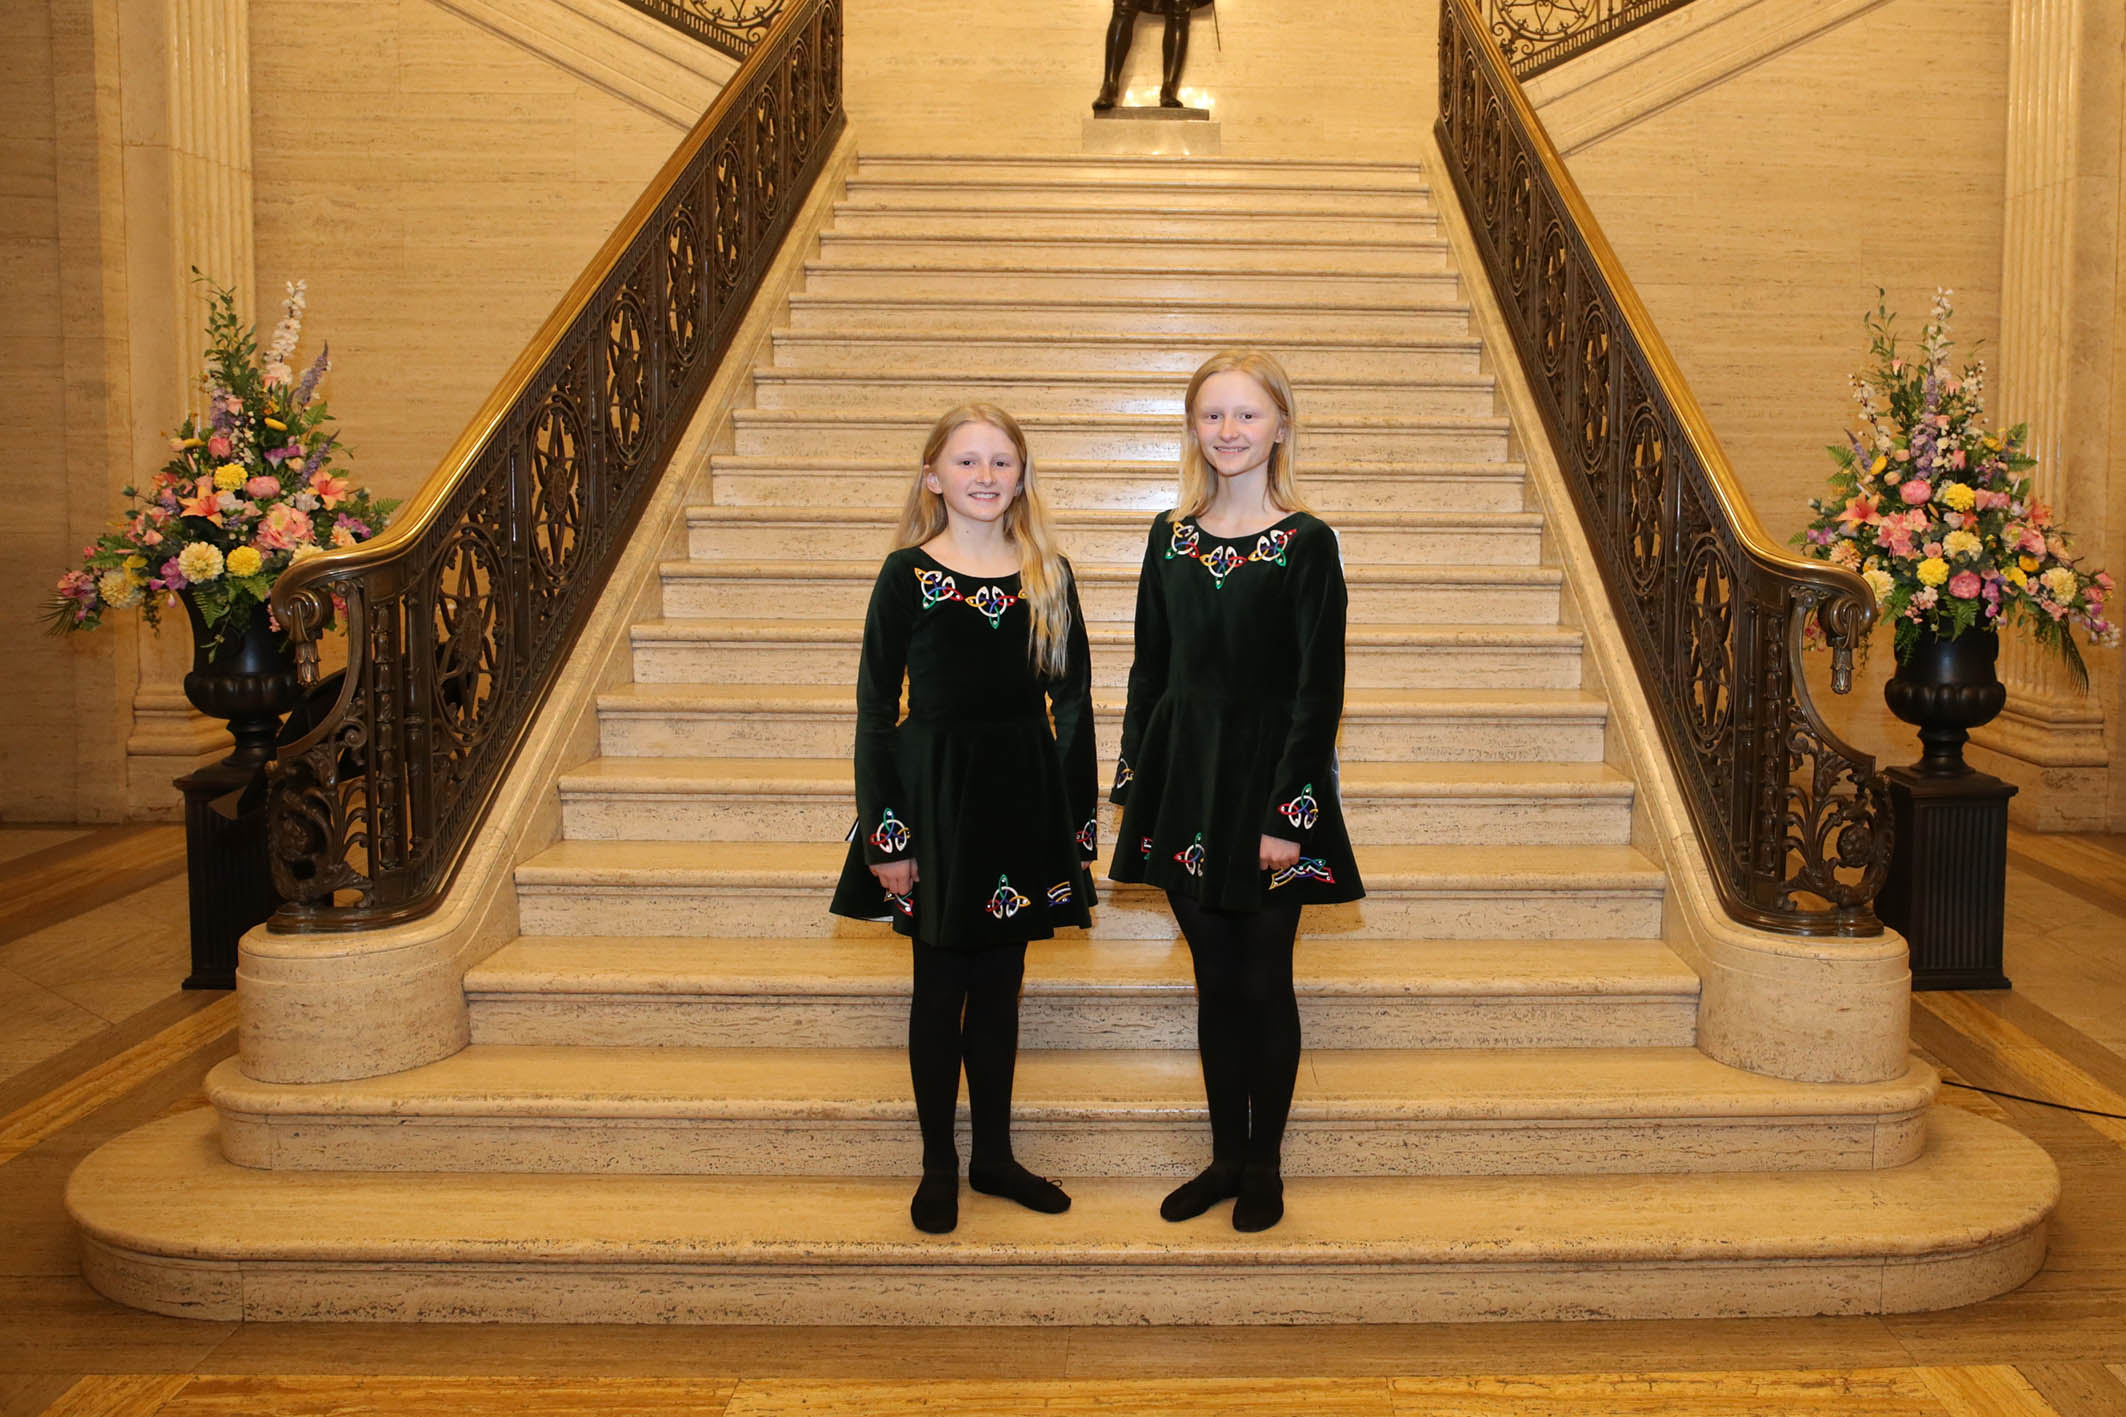 Irish dancers - Sophia and Madeleine Morwood